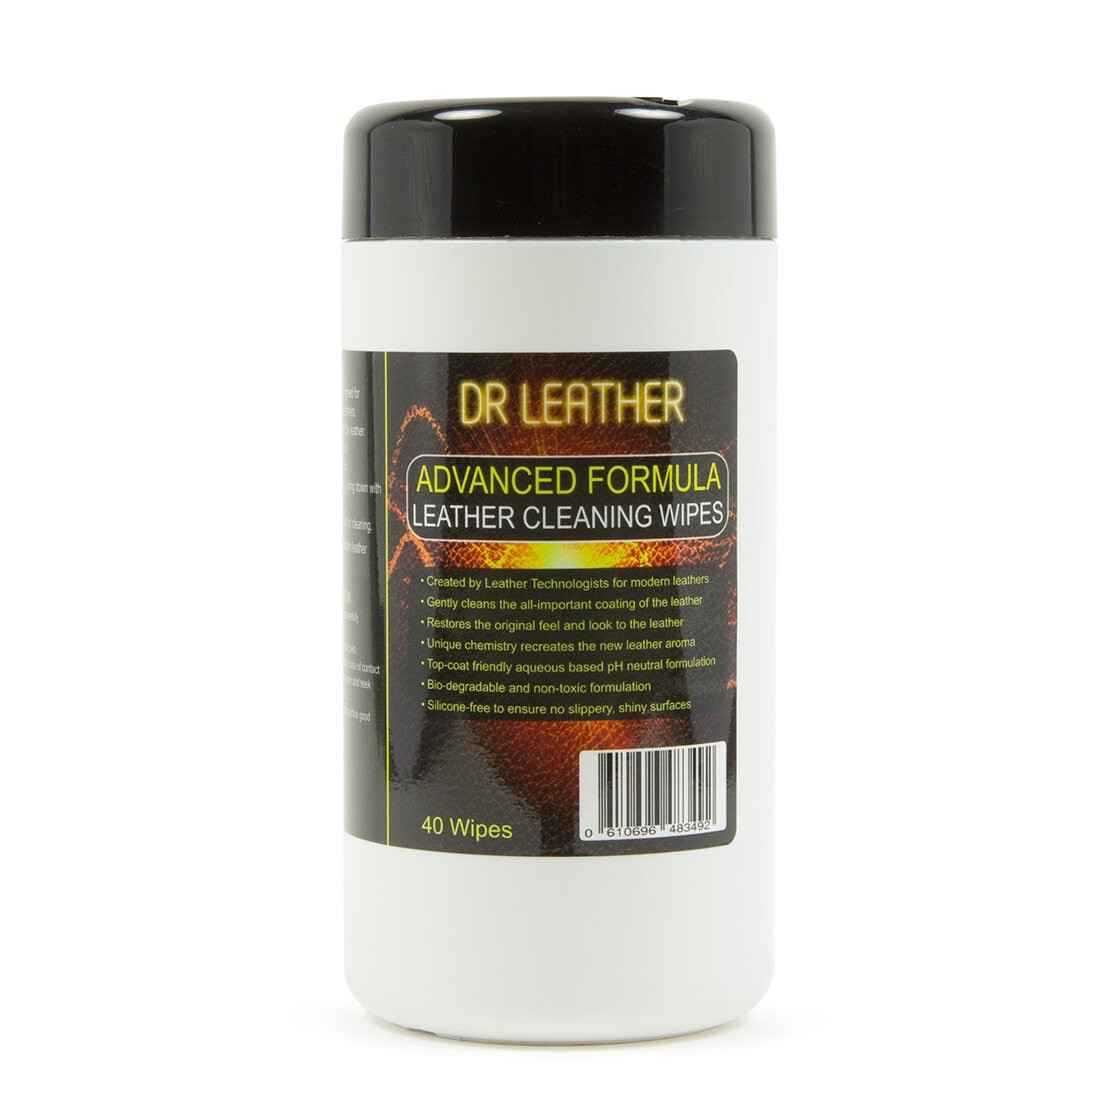 DR LEATHER LEATHER CLEANING WIPES 40